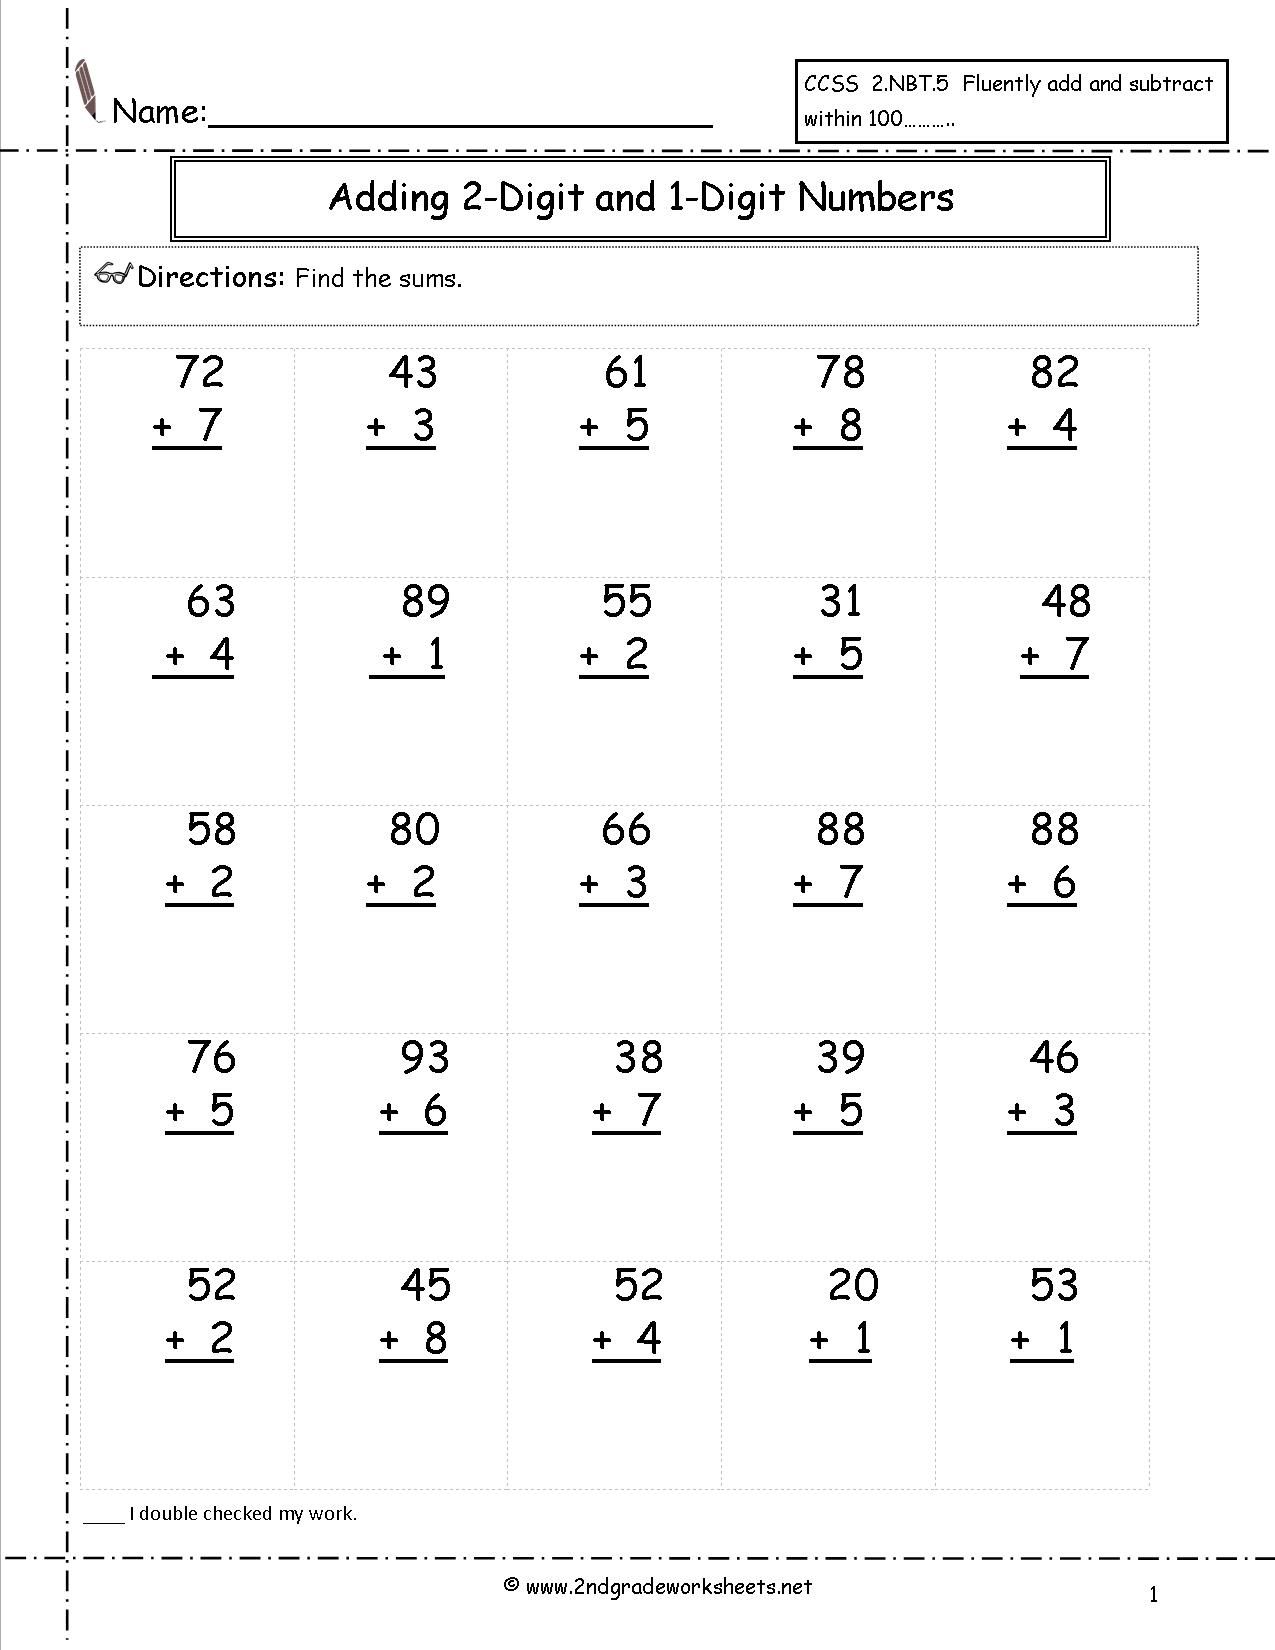 13 Best Images Of Adding To A Number 10 Worksheet